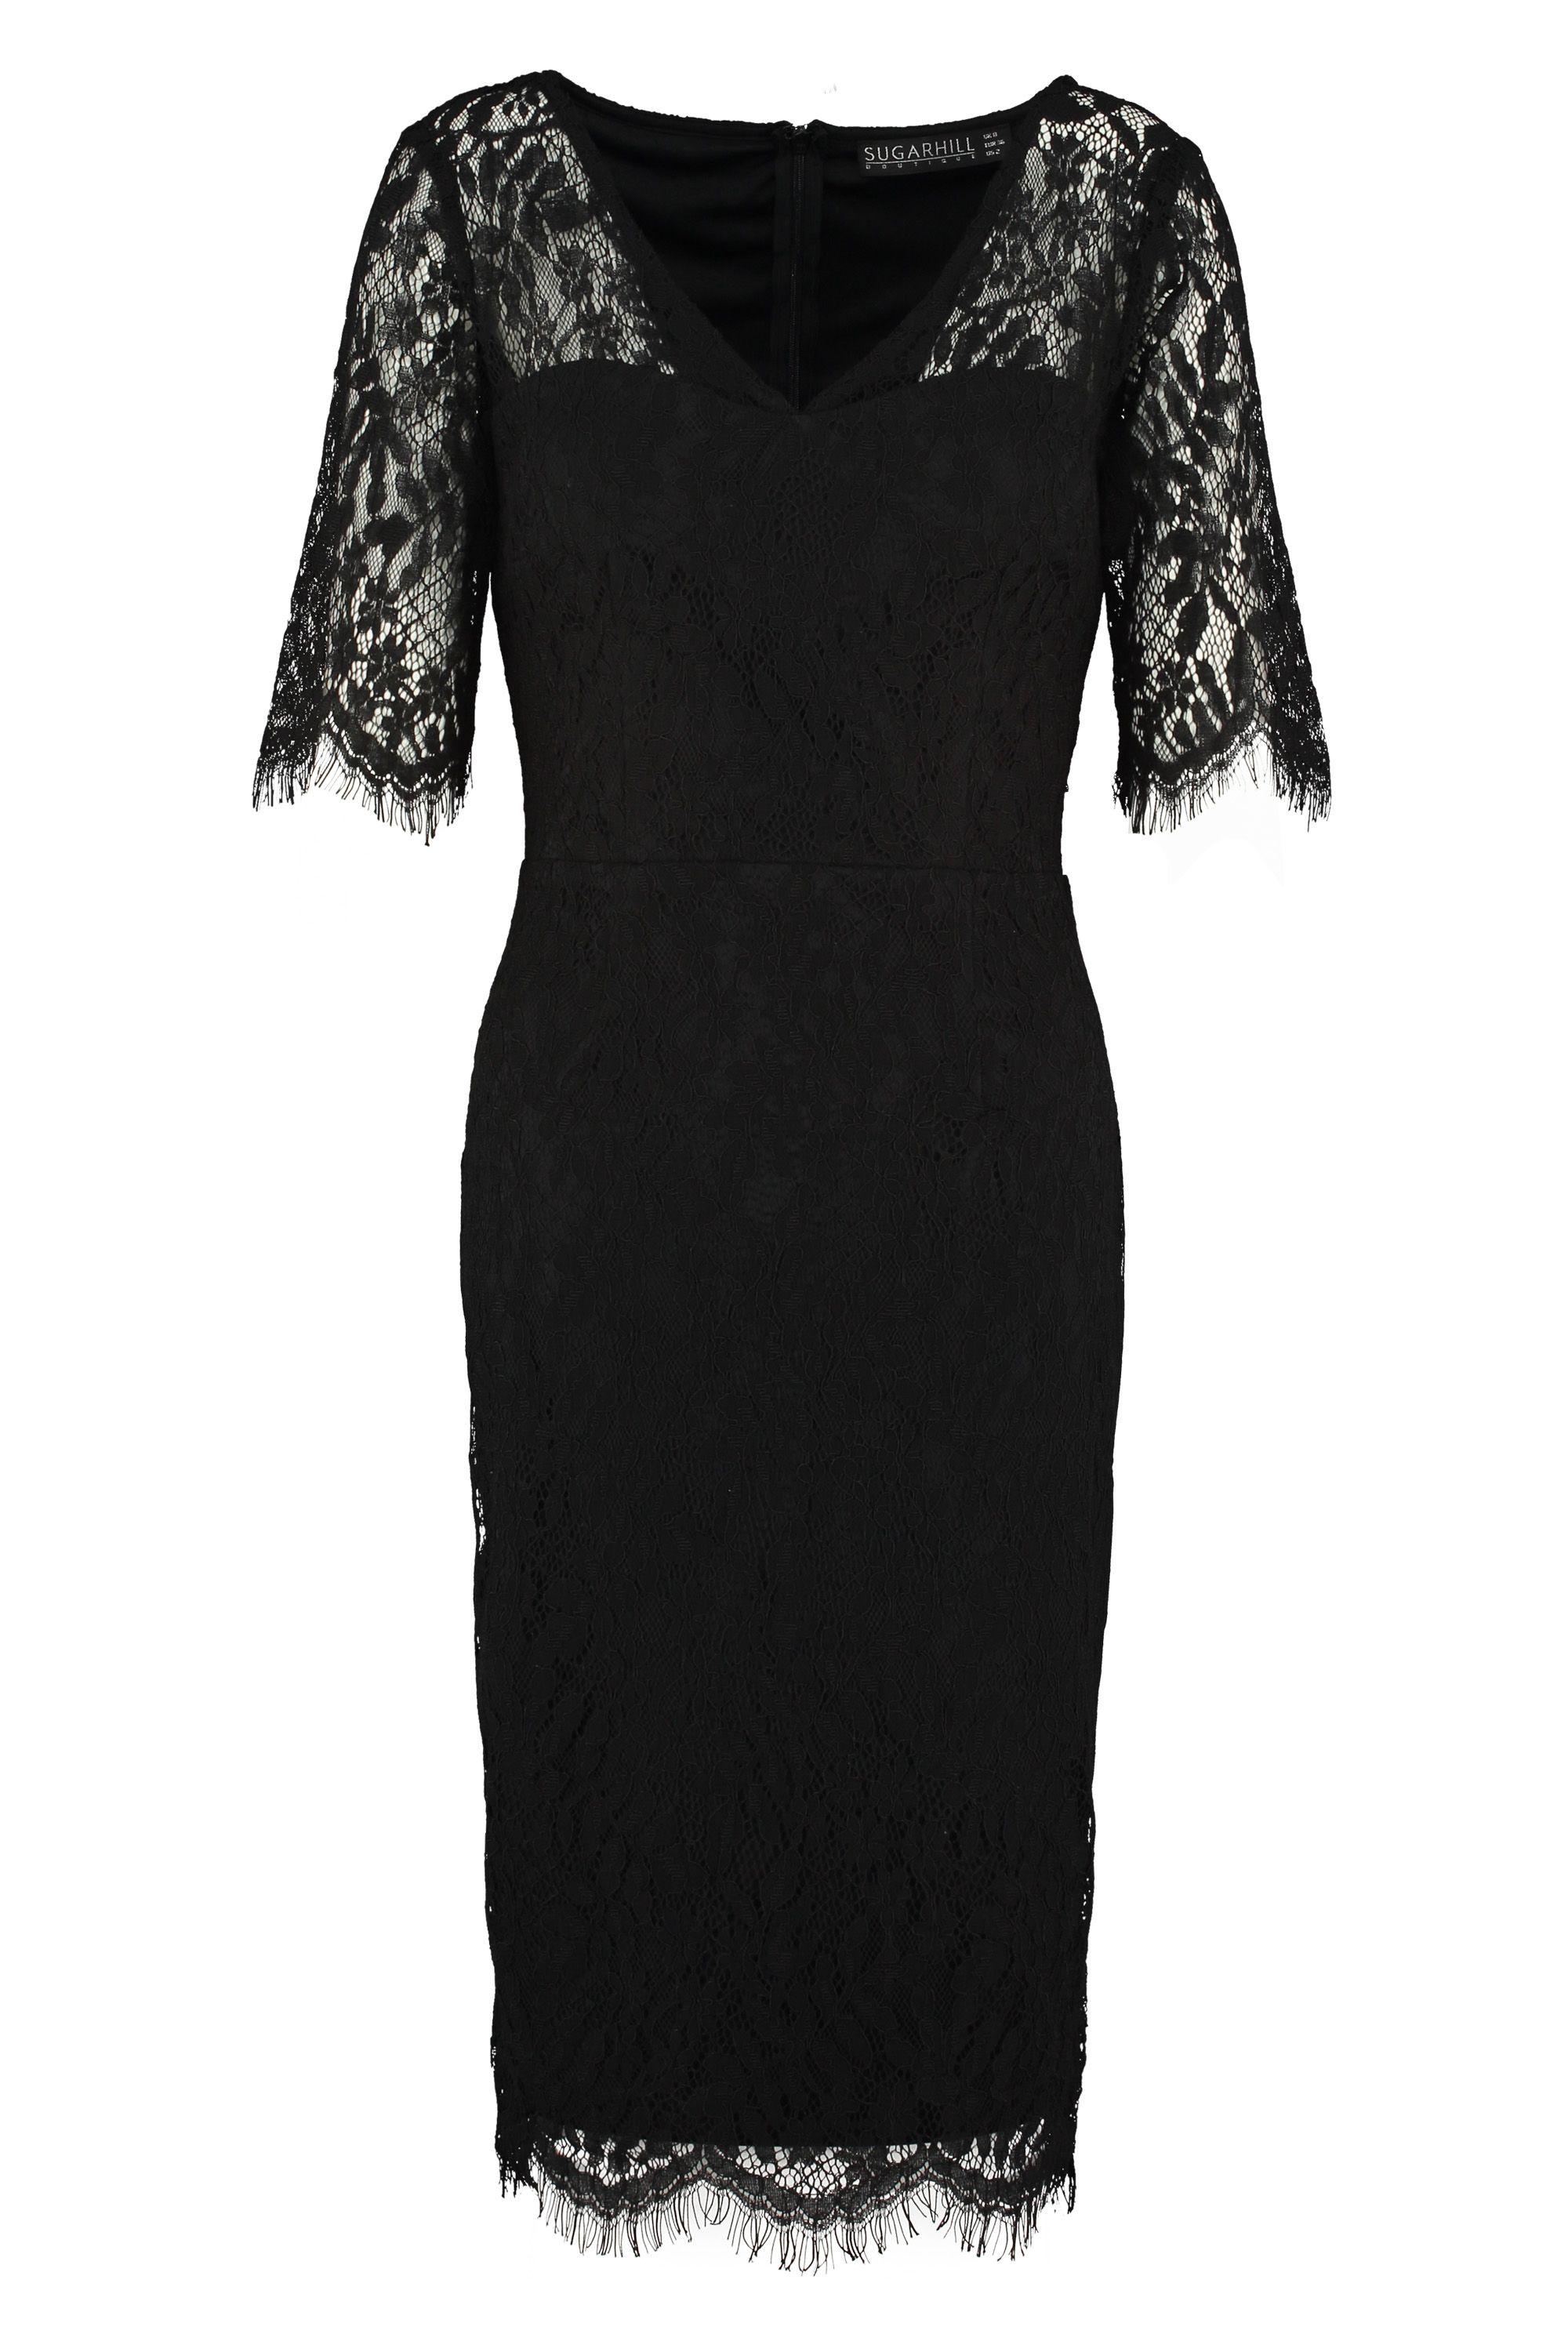 Sugarhill Boutique Kim Lace Dress, Jet Black